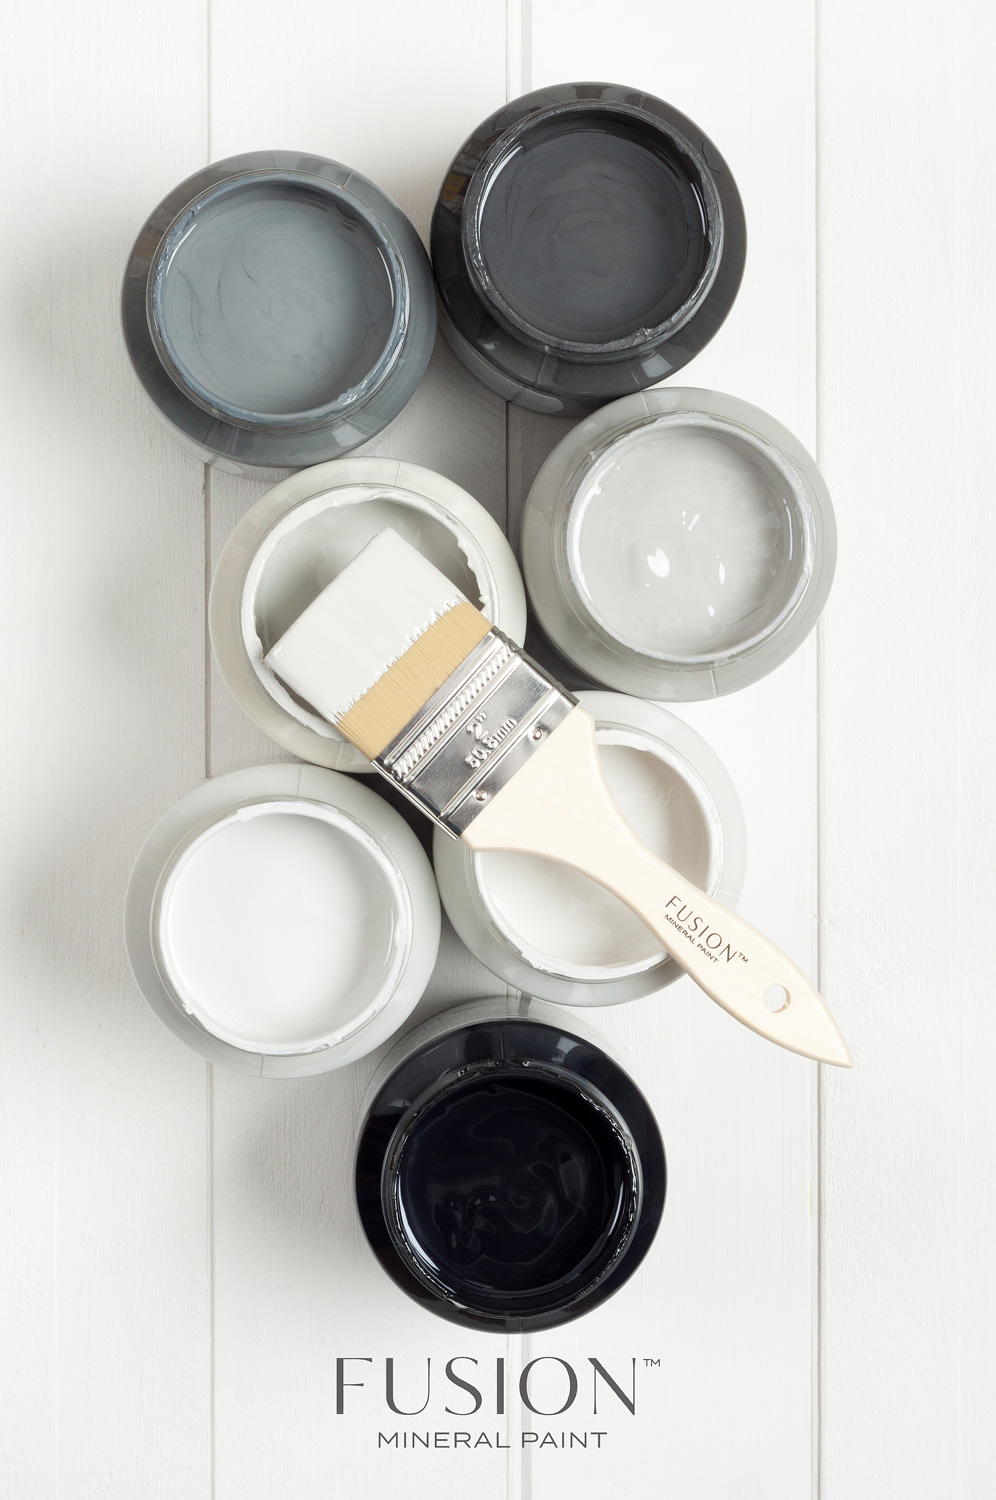 Fusion Mineral Paint in the colours Soap Stone, Ash, Sterling, Little Lamb, Lamp white, Pebble and Coal Black